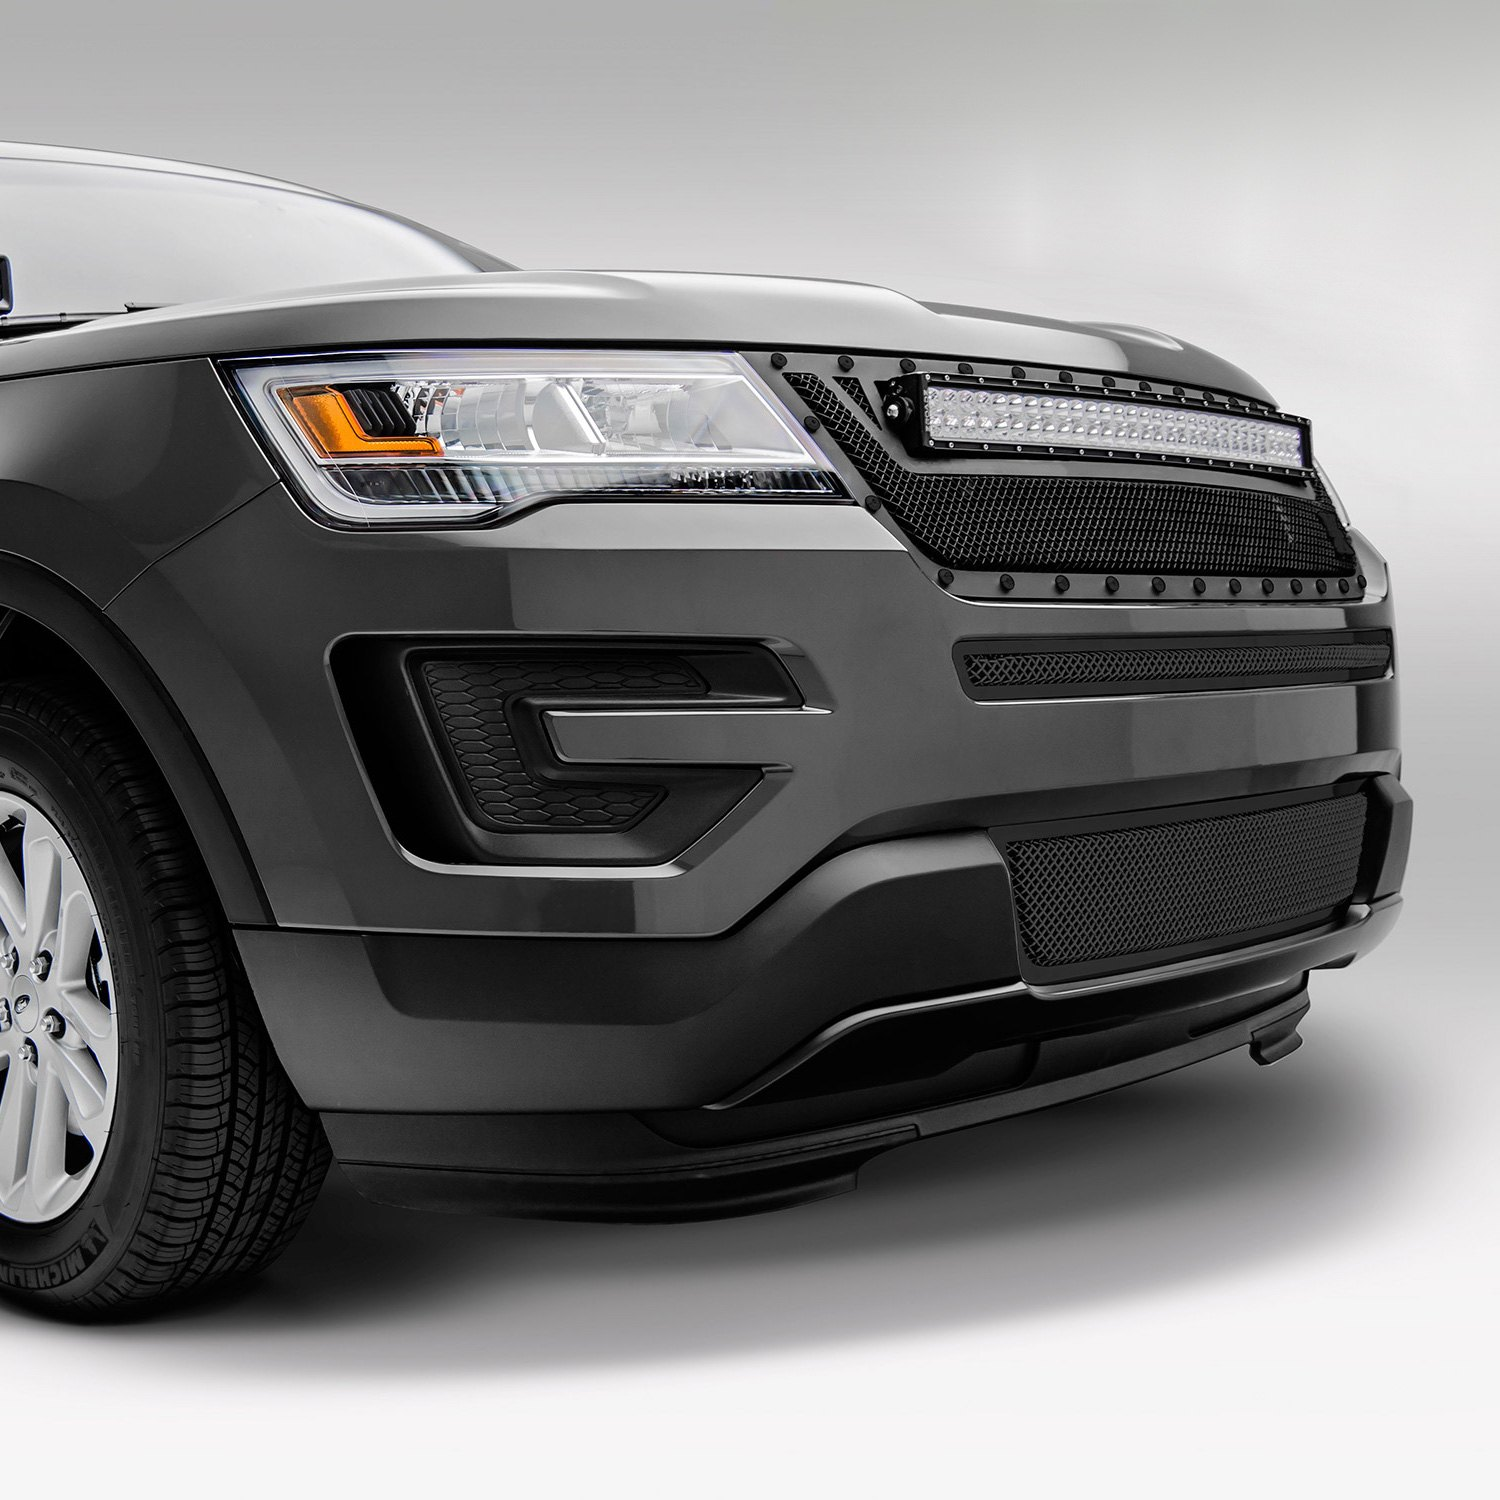 Black Ford Explorer >> T-Rex® - Ford Explorer 2016 1-Pc Stealth Torch Series Black Formed Woven Wire Mesh Main Grille ...